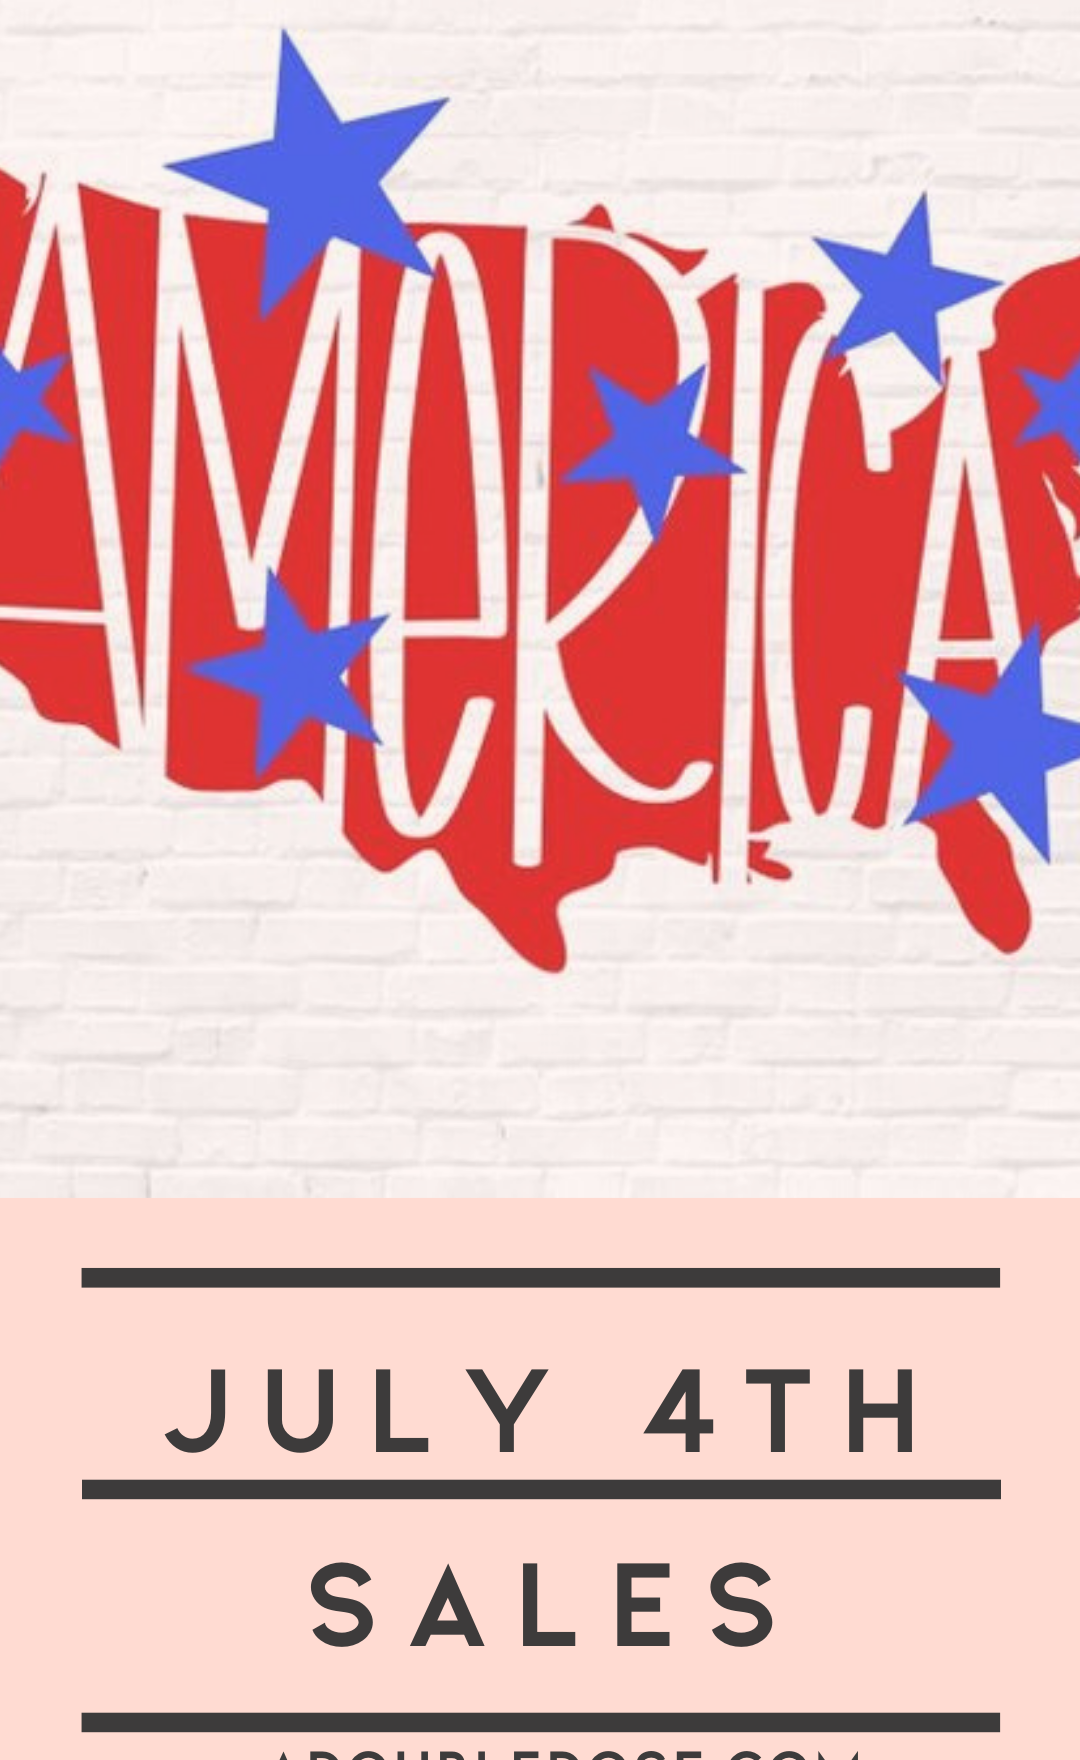 alexis and samantha belbel share the best july 4th weekend sales from abercrombie, lululemon, nordstrom, old navy, and more | adoubleodse.com